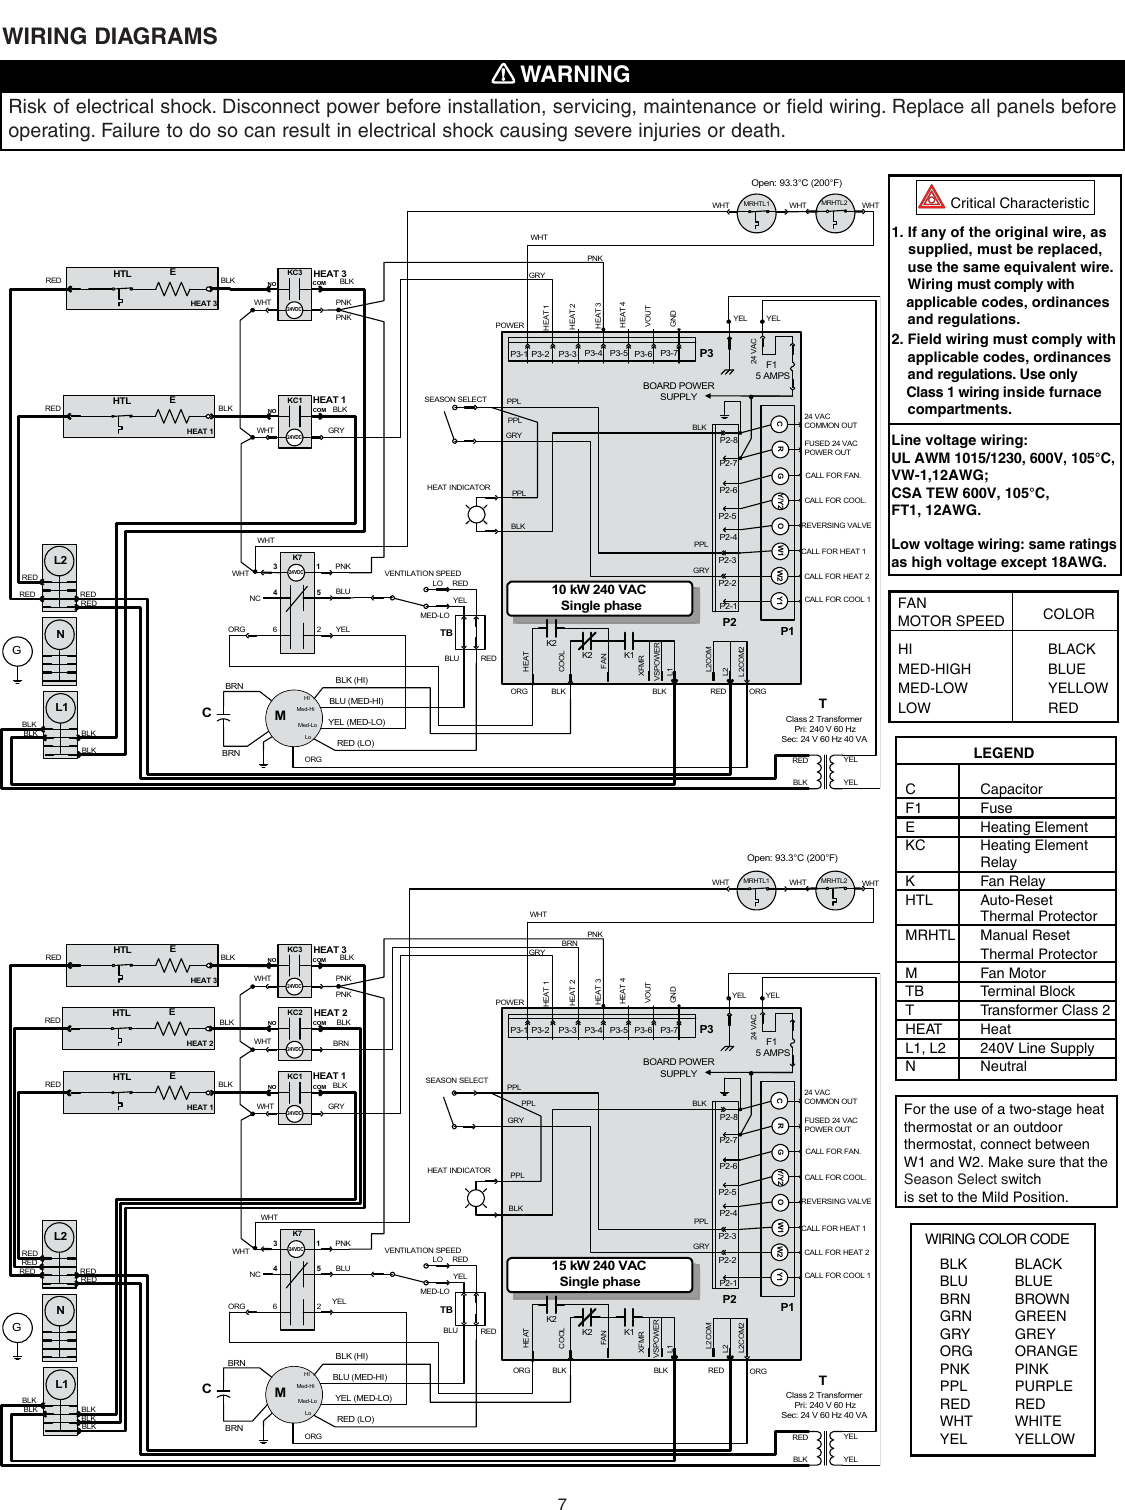 Broan Furnace 30042432A Users Manual D Series Nortron Electric Furnaces  Installation (30042432A)UserManual.wiki